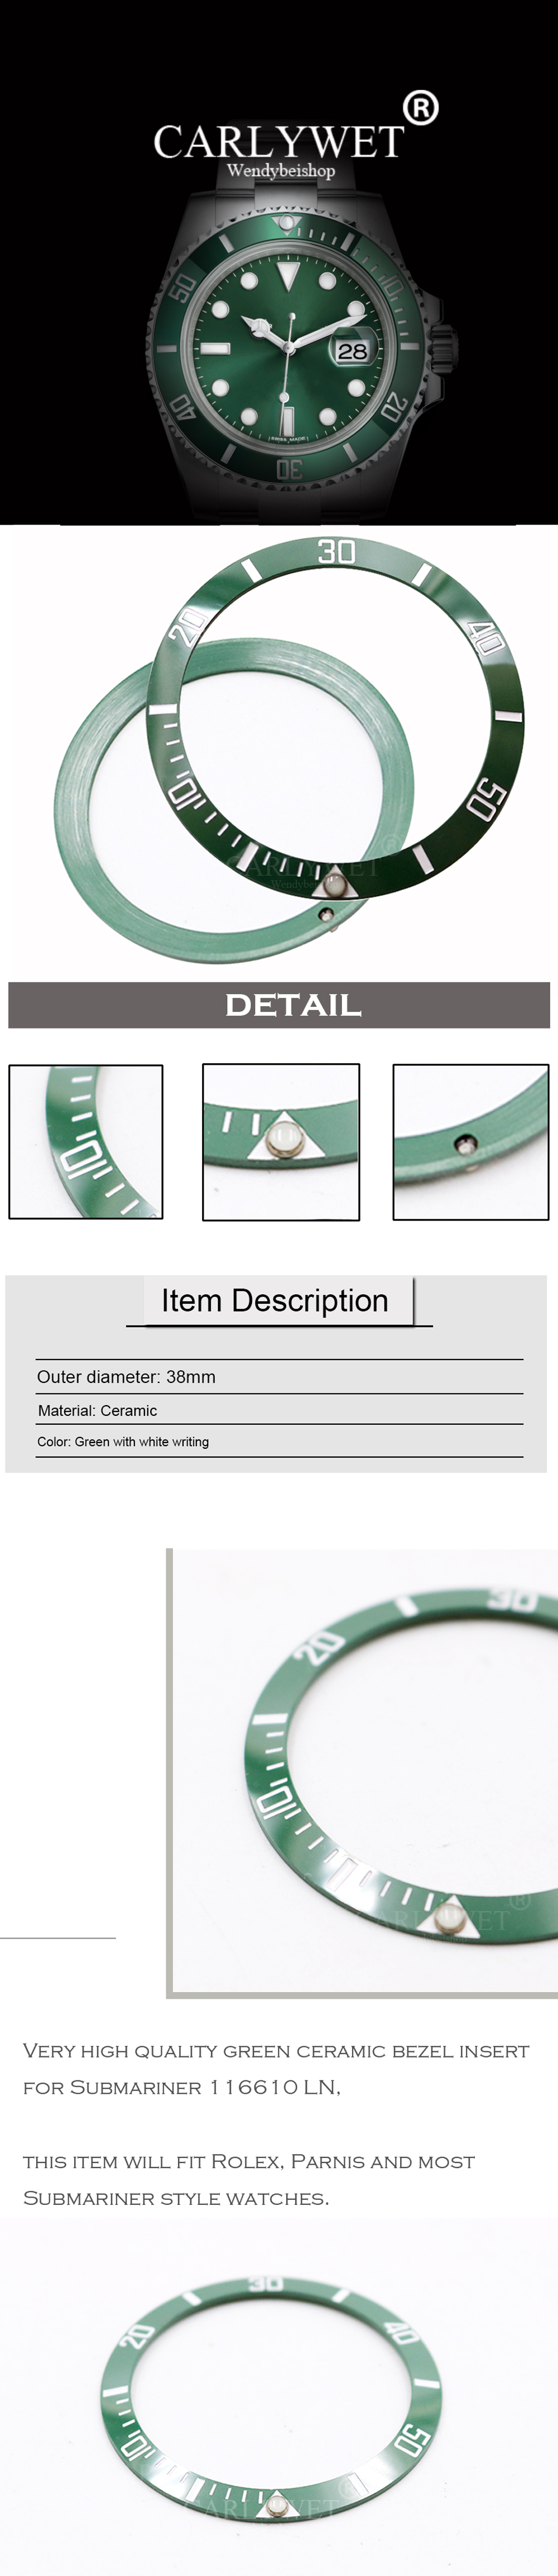 CARLYWET Wholesale Replacement Green With White Writings Ceramic Bezel 38mm  Insert made for Rolex Submariner GMT 40mm 116610 LN